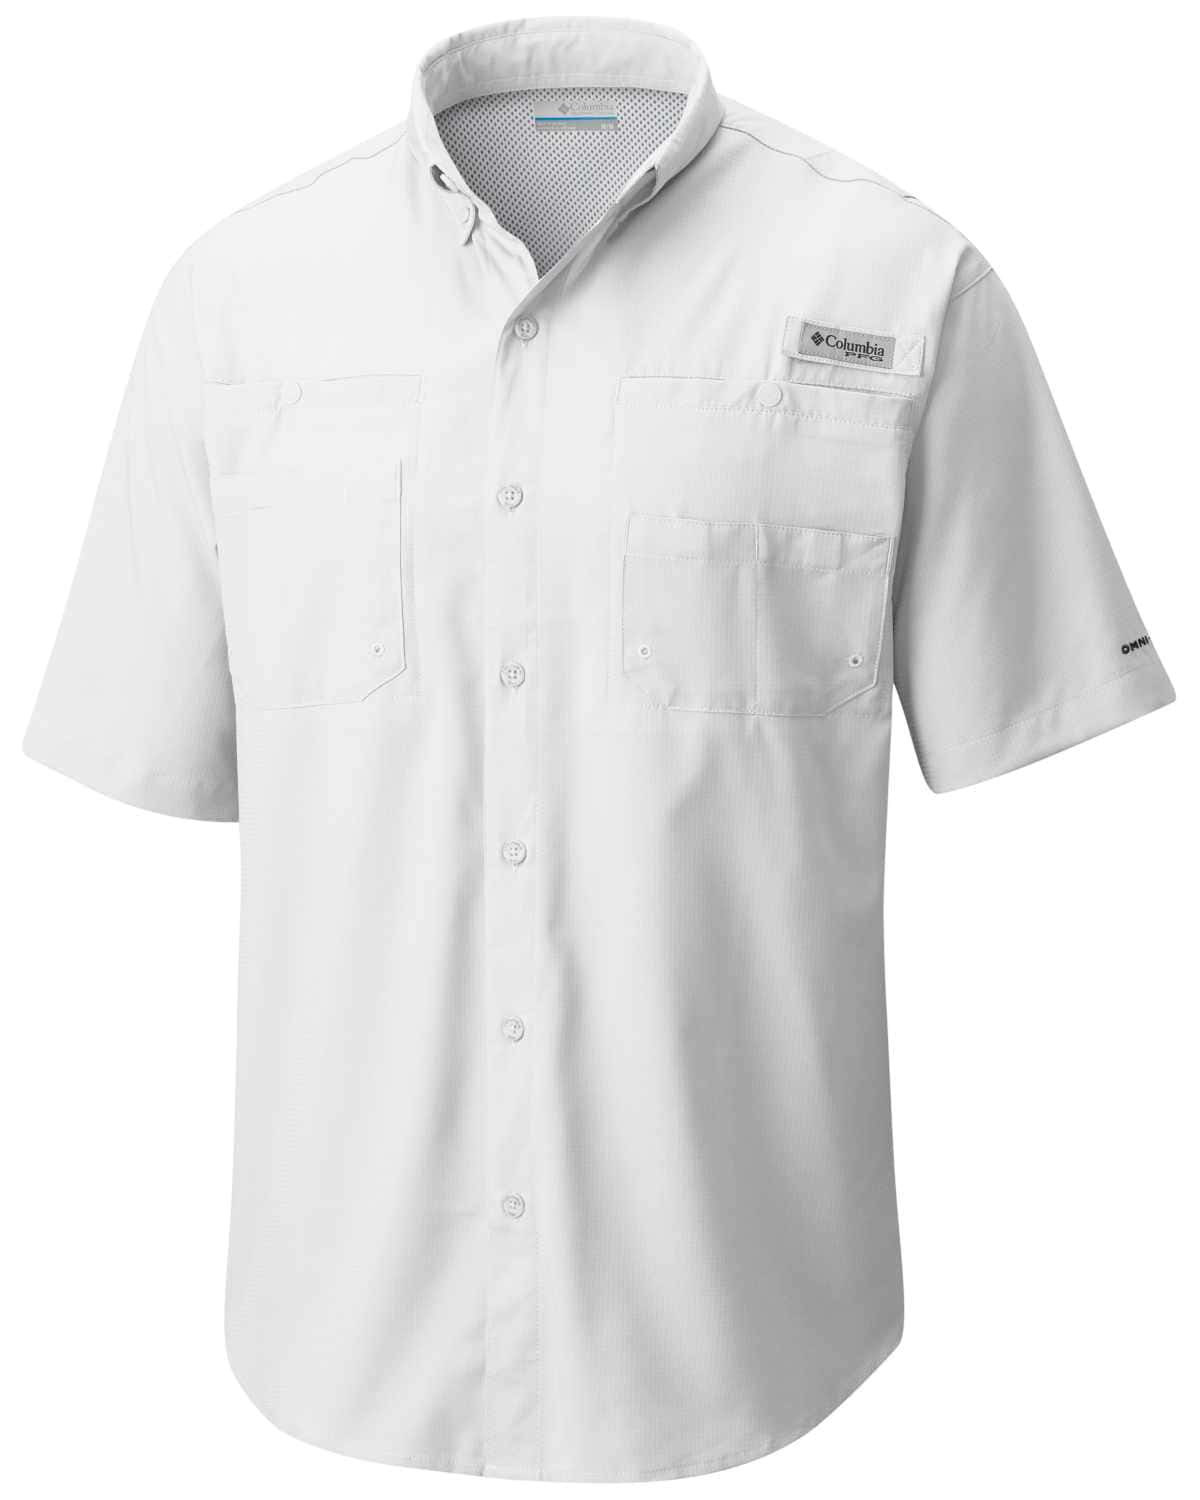 Columbia-Tamiami II Short-Sleeve Shirt - Men's